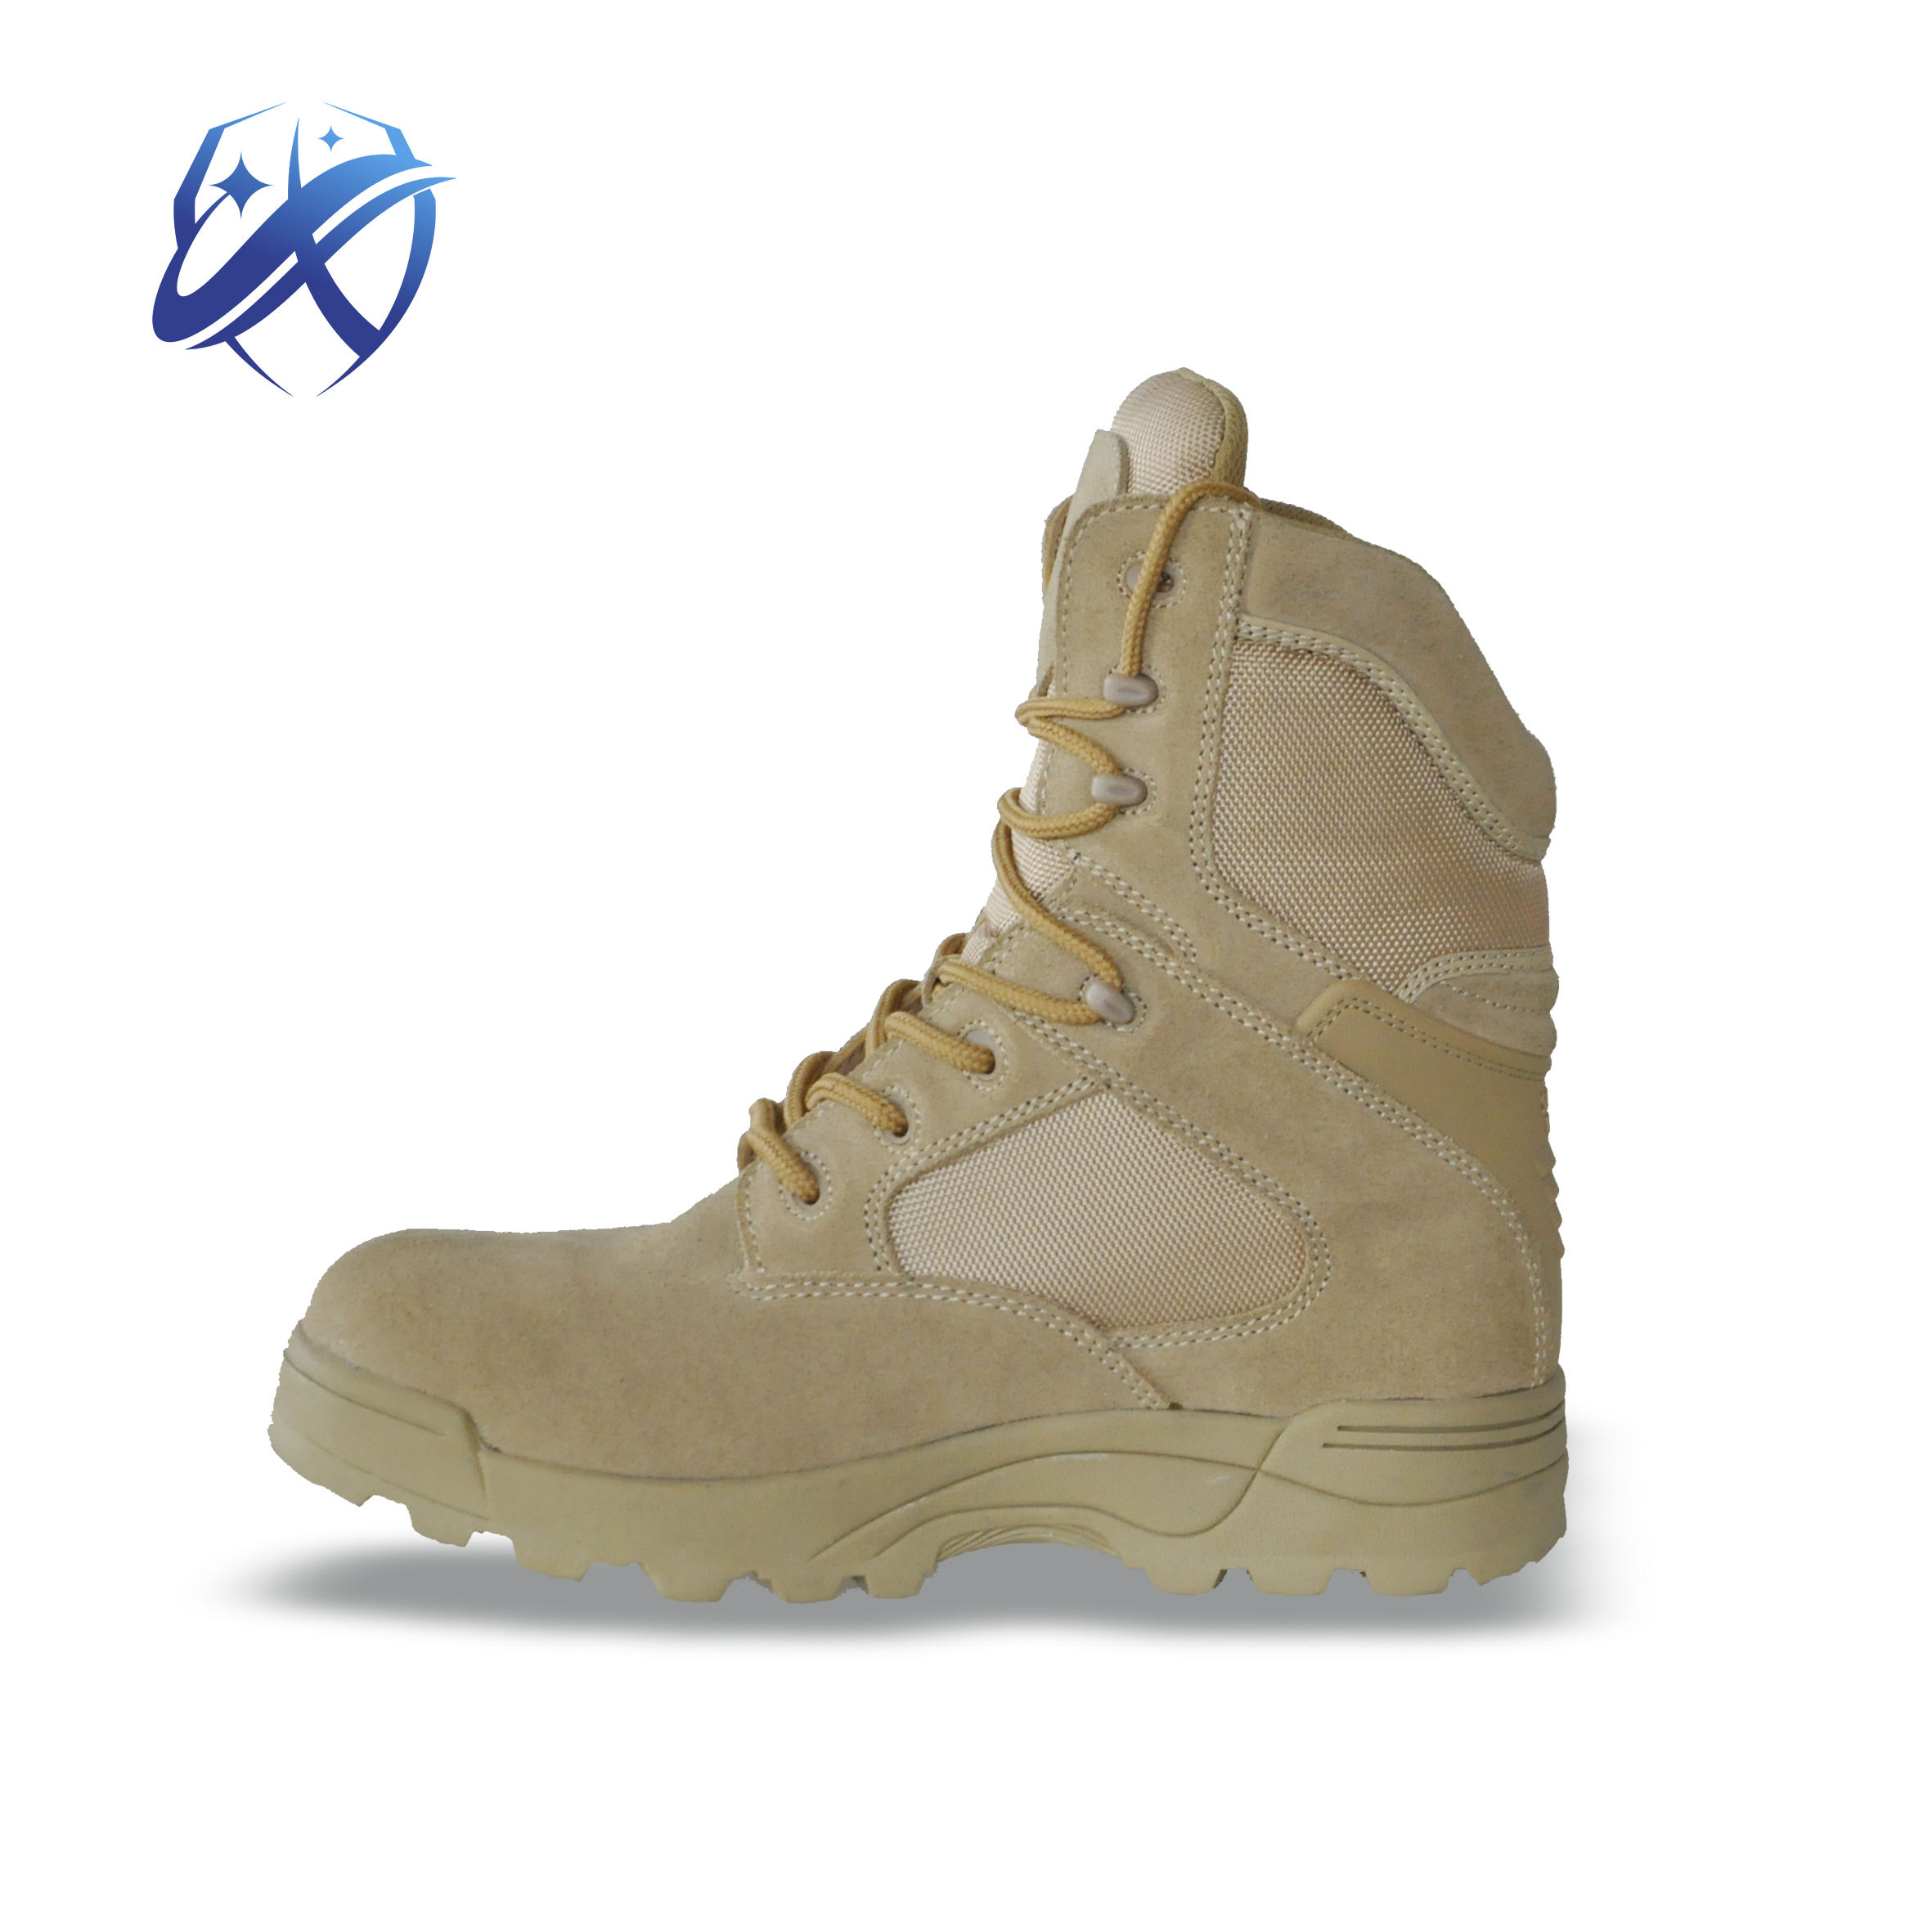 Military Army Combat Safety Boots